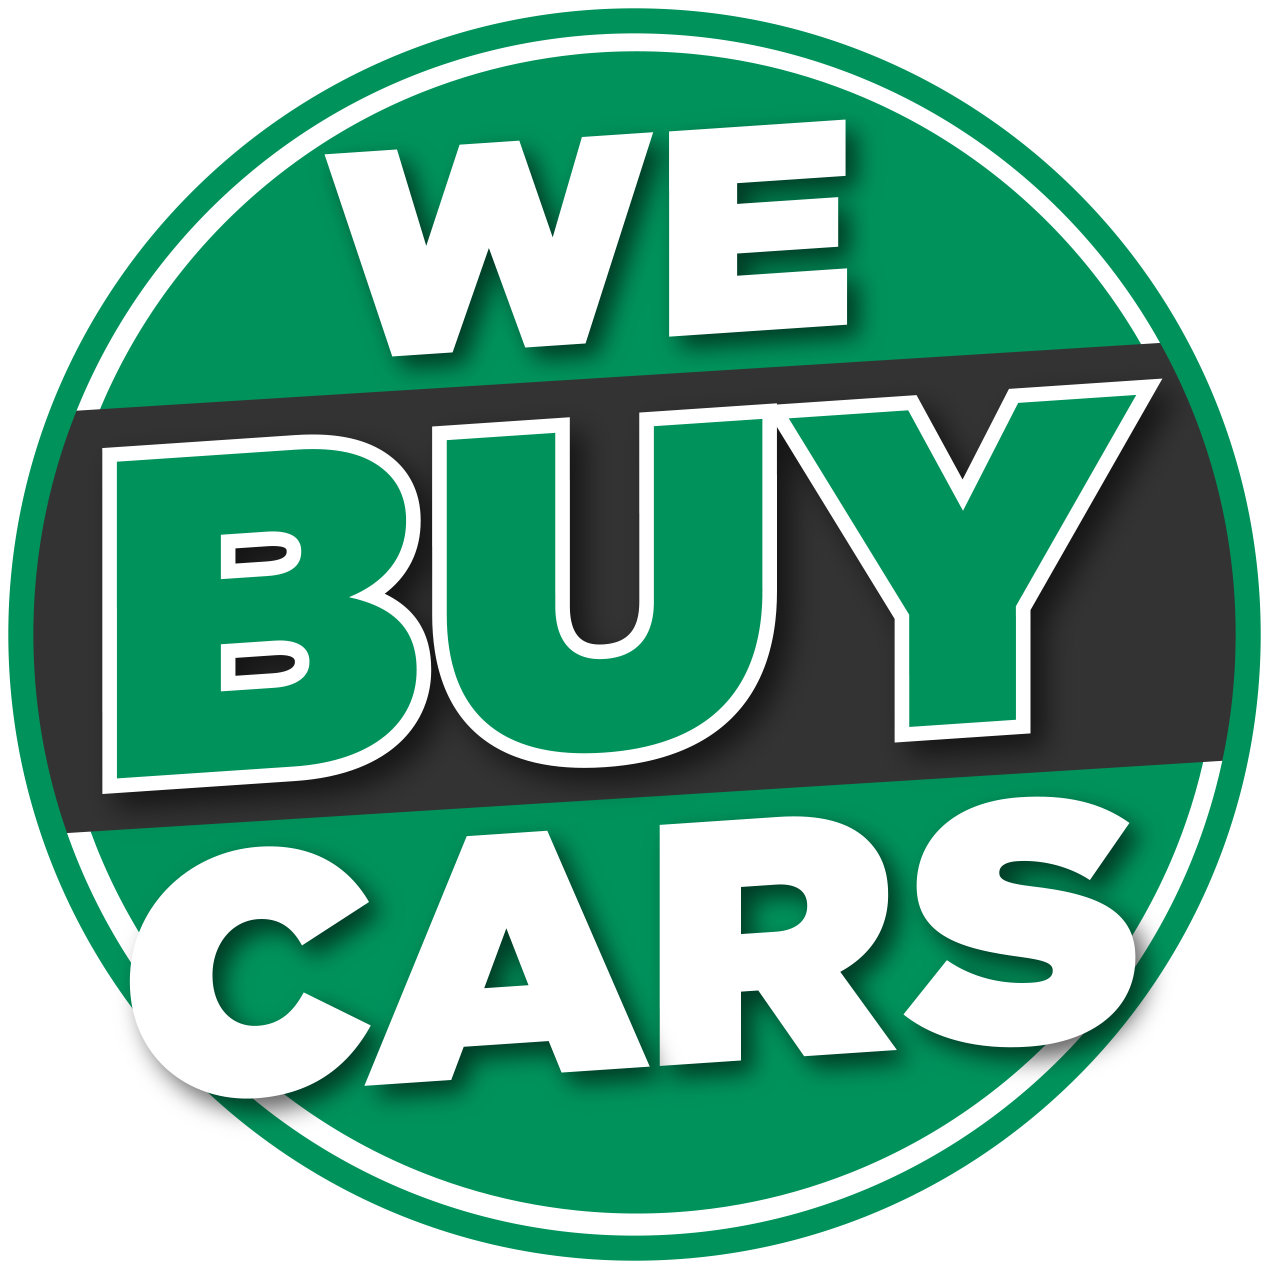 We Buy Cars at Super Car Guys!